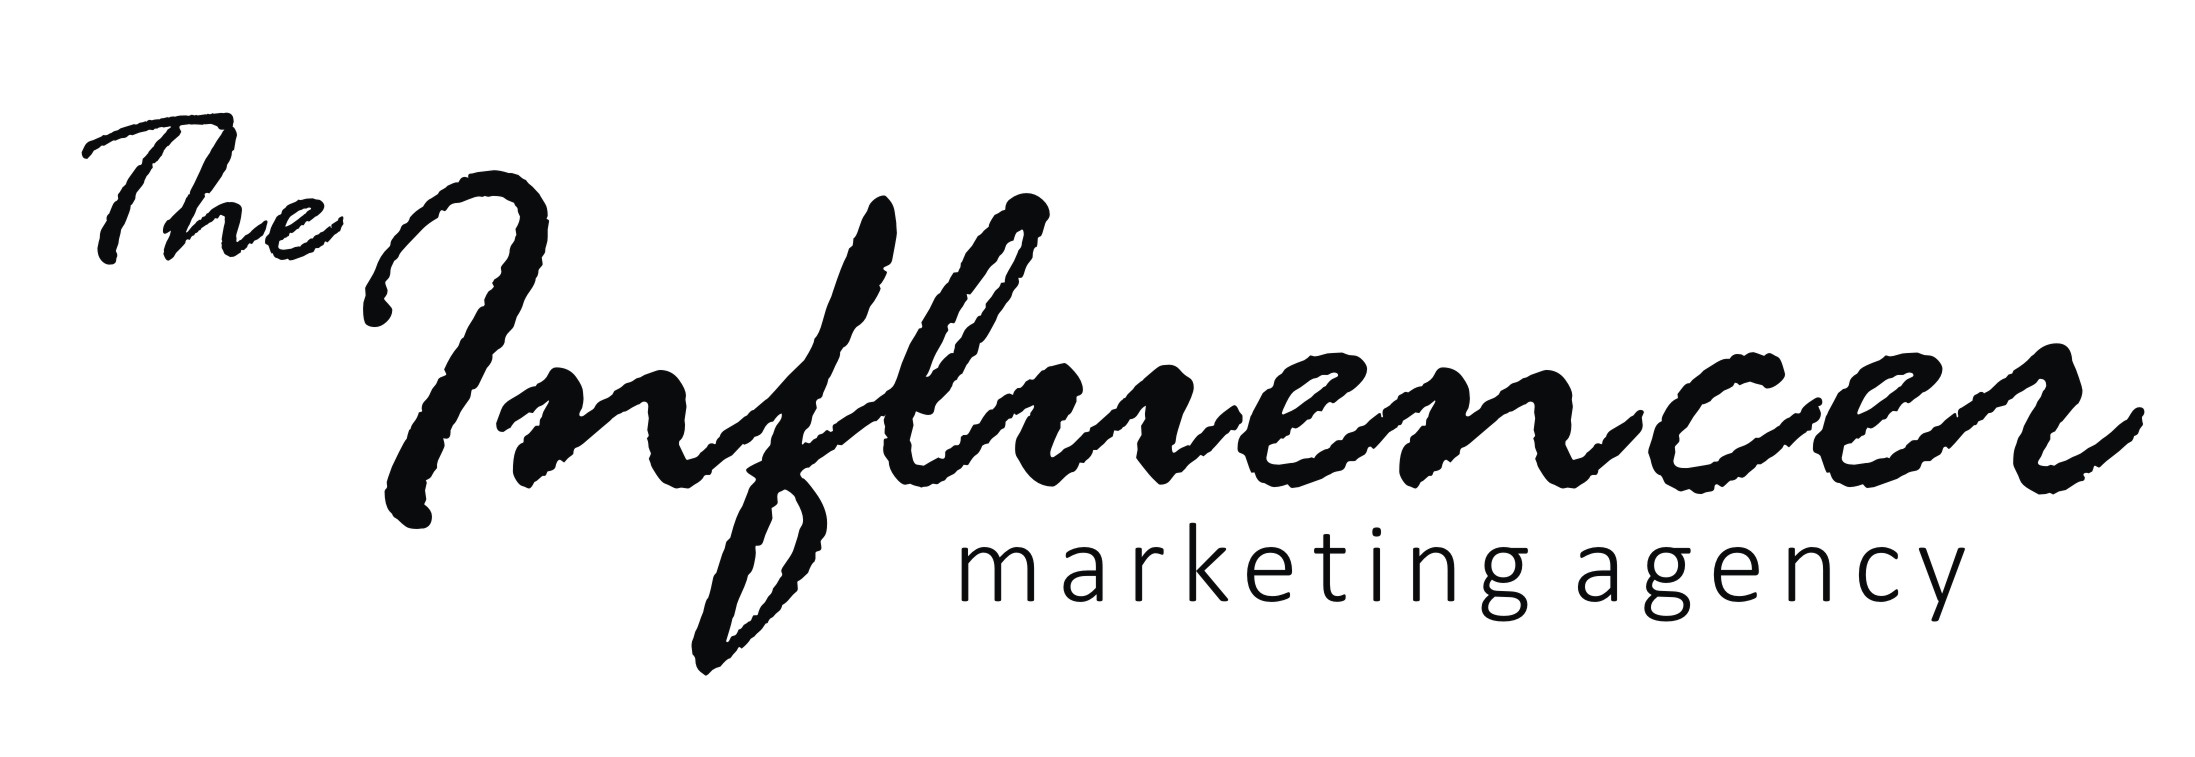 The Influencer Marketing Agency